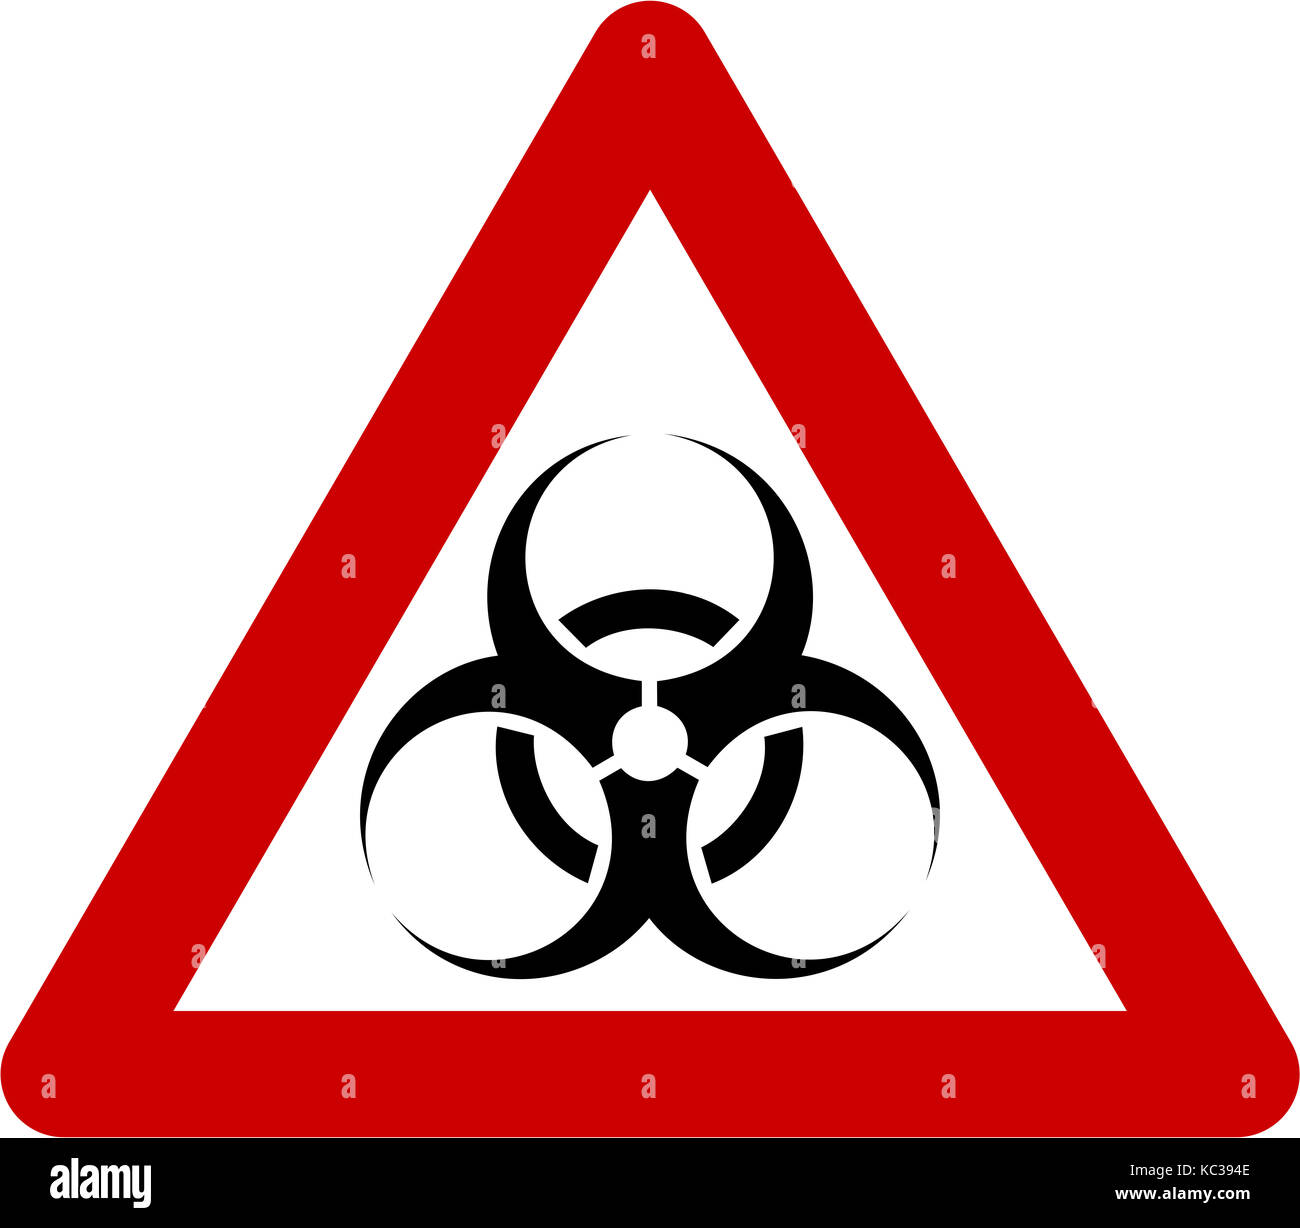 Warning sign with biohazard substances symbol stock photo warning sign with biohazard substances symbol biocorpaavc Image collections